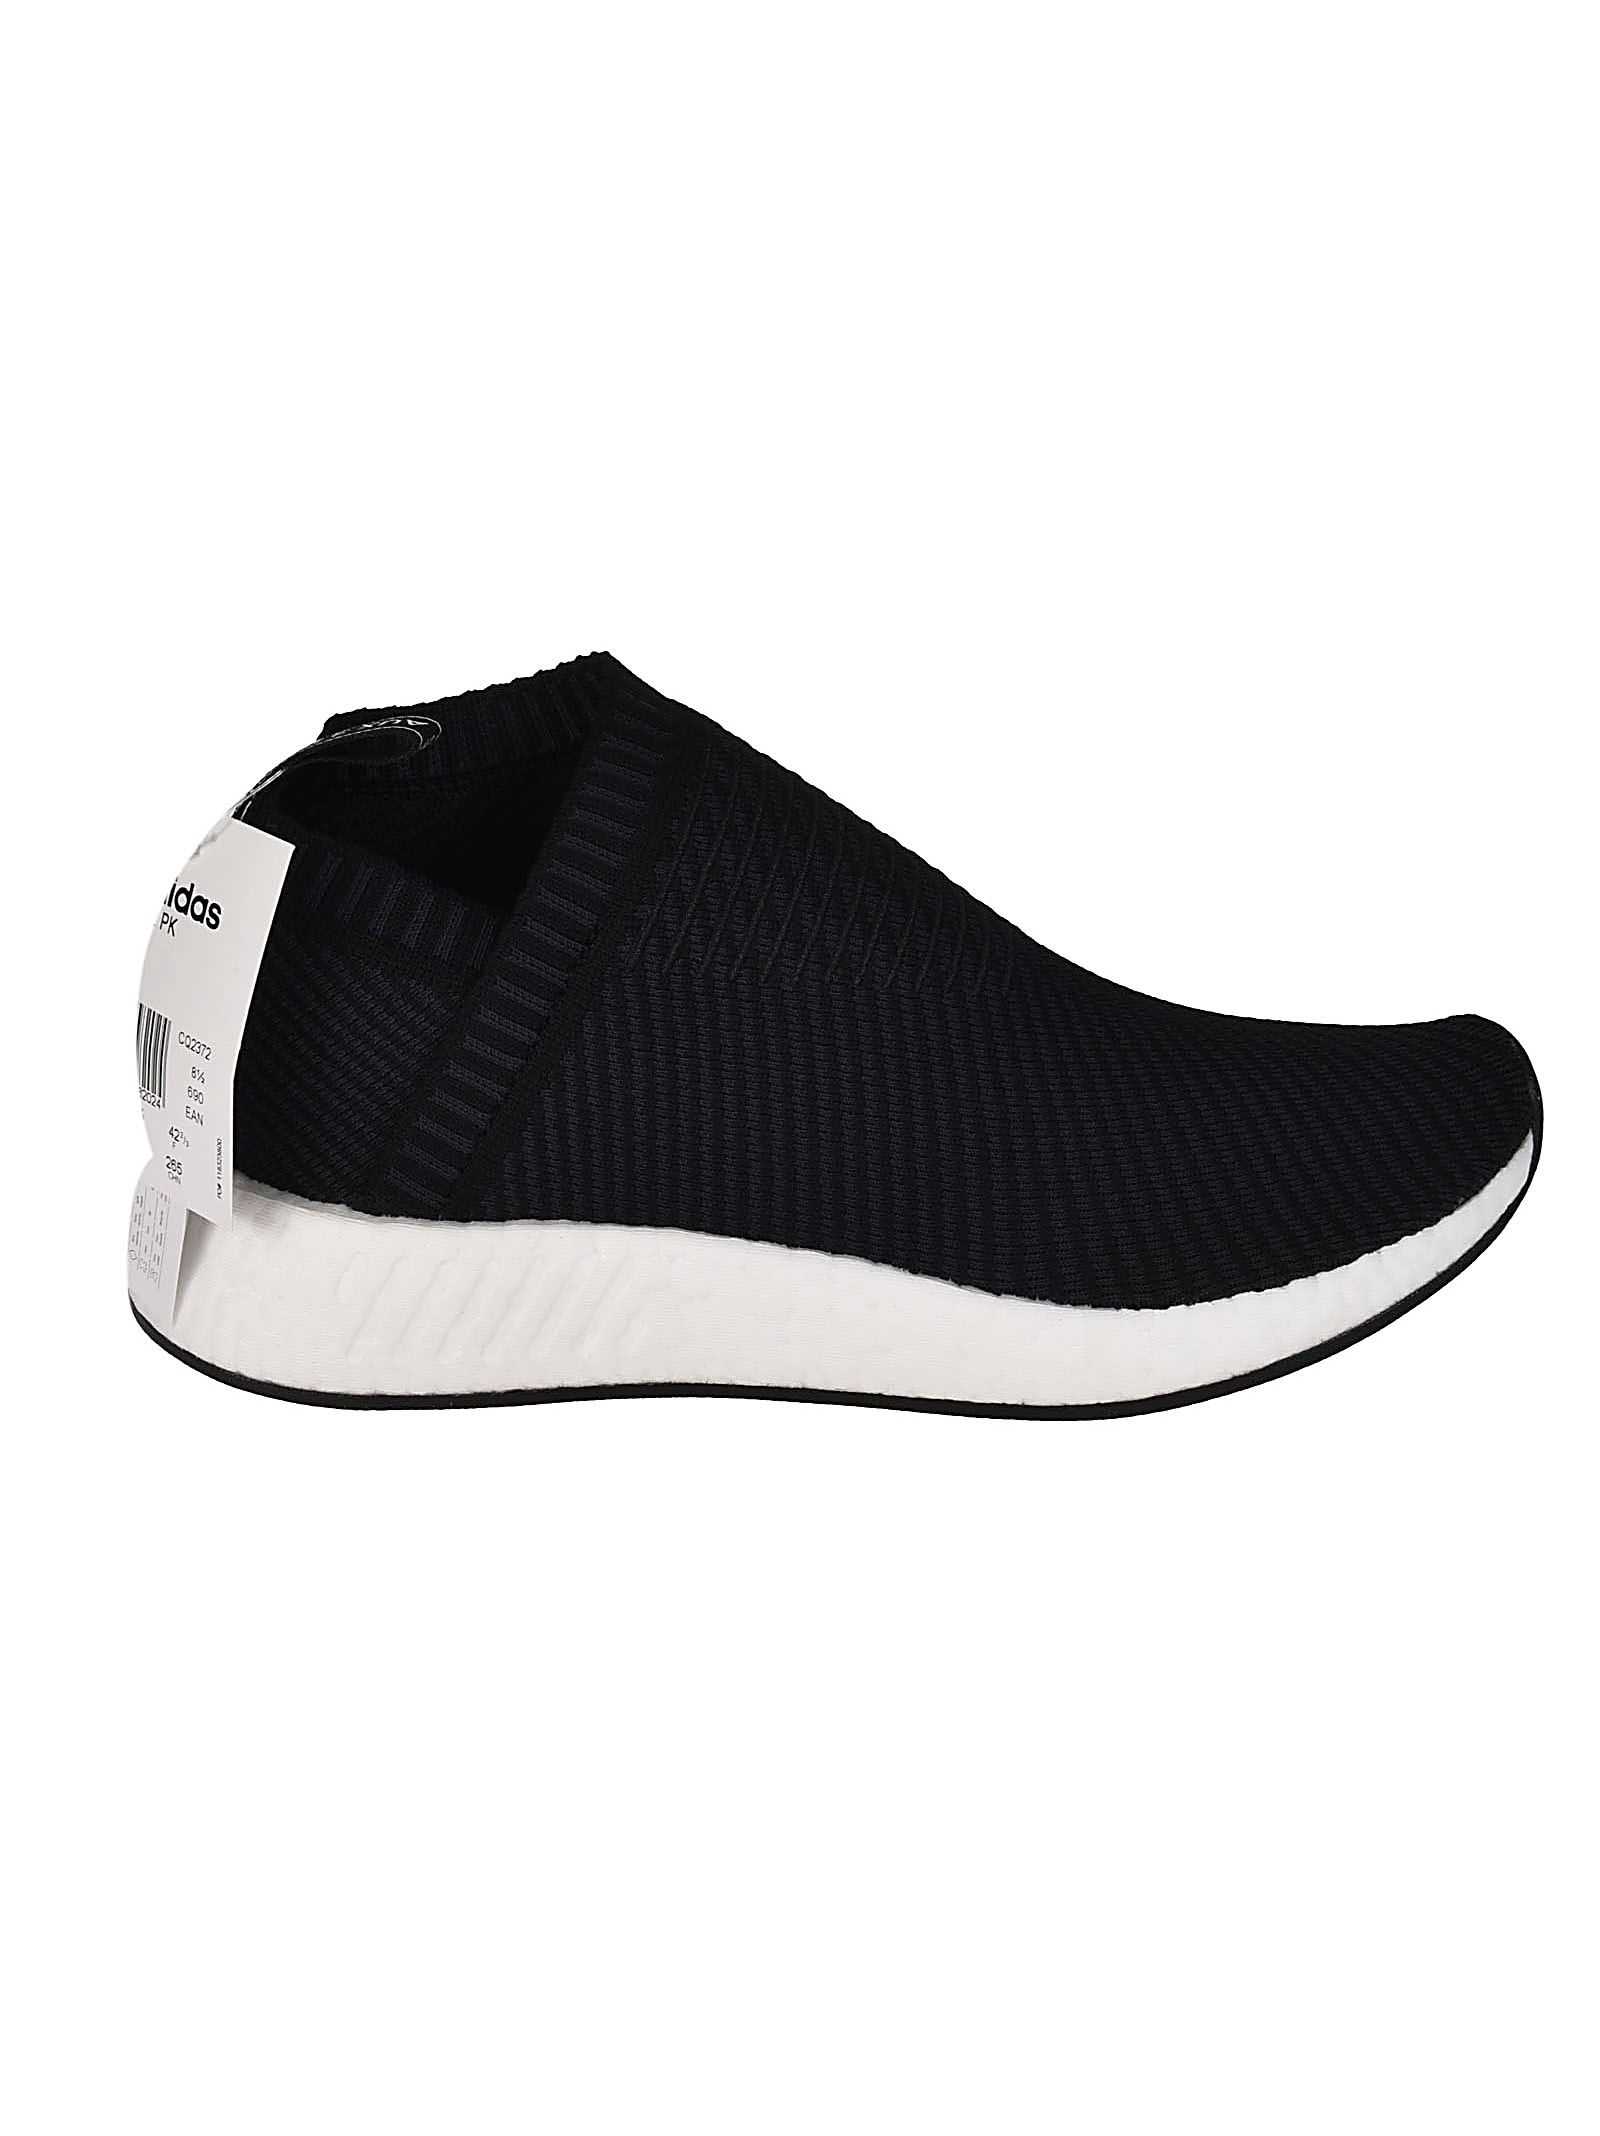 Adidas Originals Nmd Cs2 Primeknit Sneakers